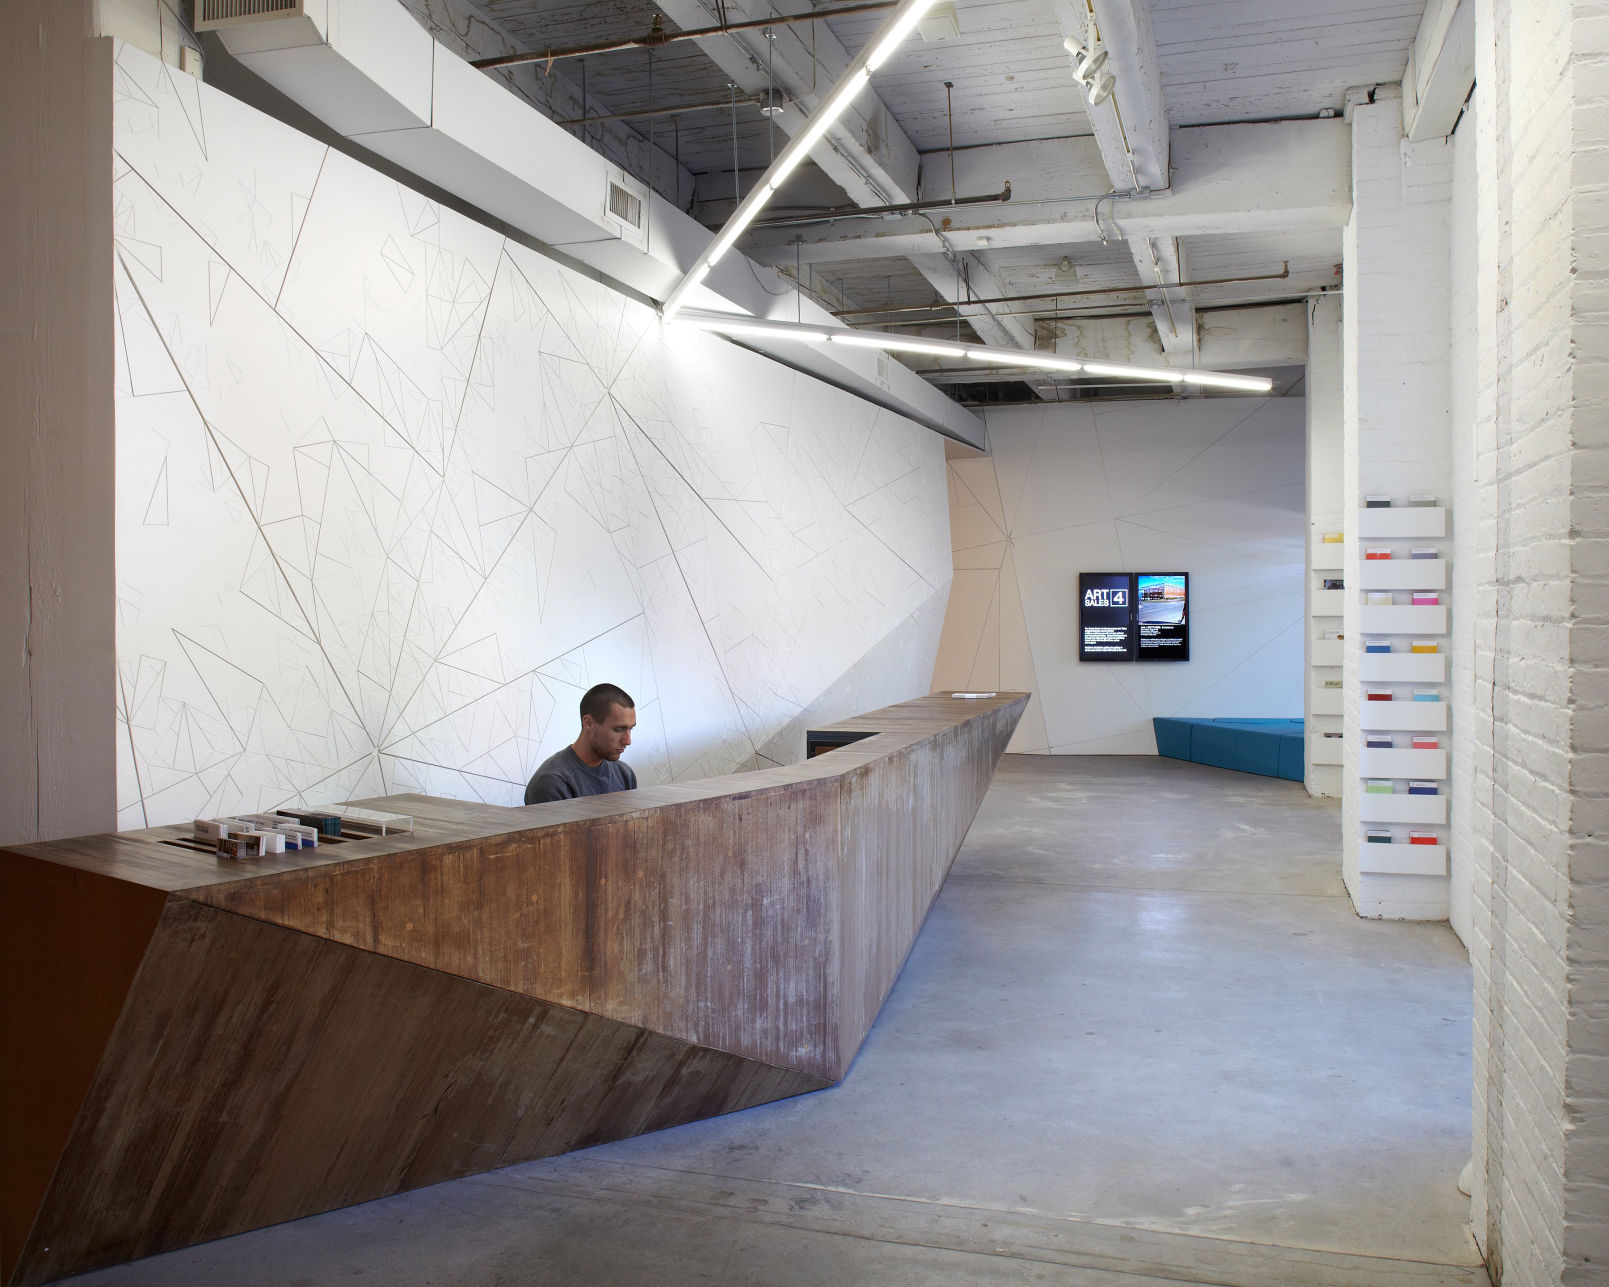 Cement U2014 Technically, Concrete U2014 The Next Cool Touch In Interior Design